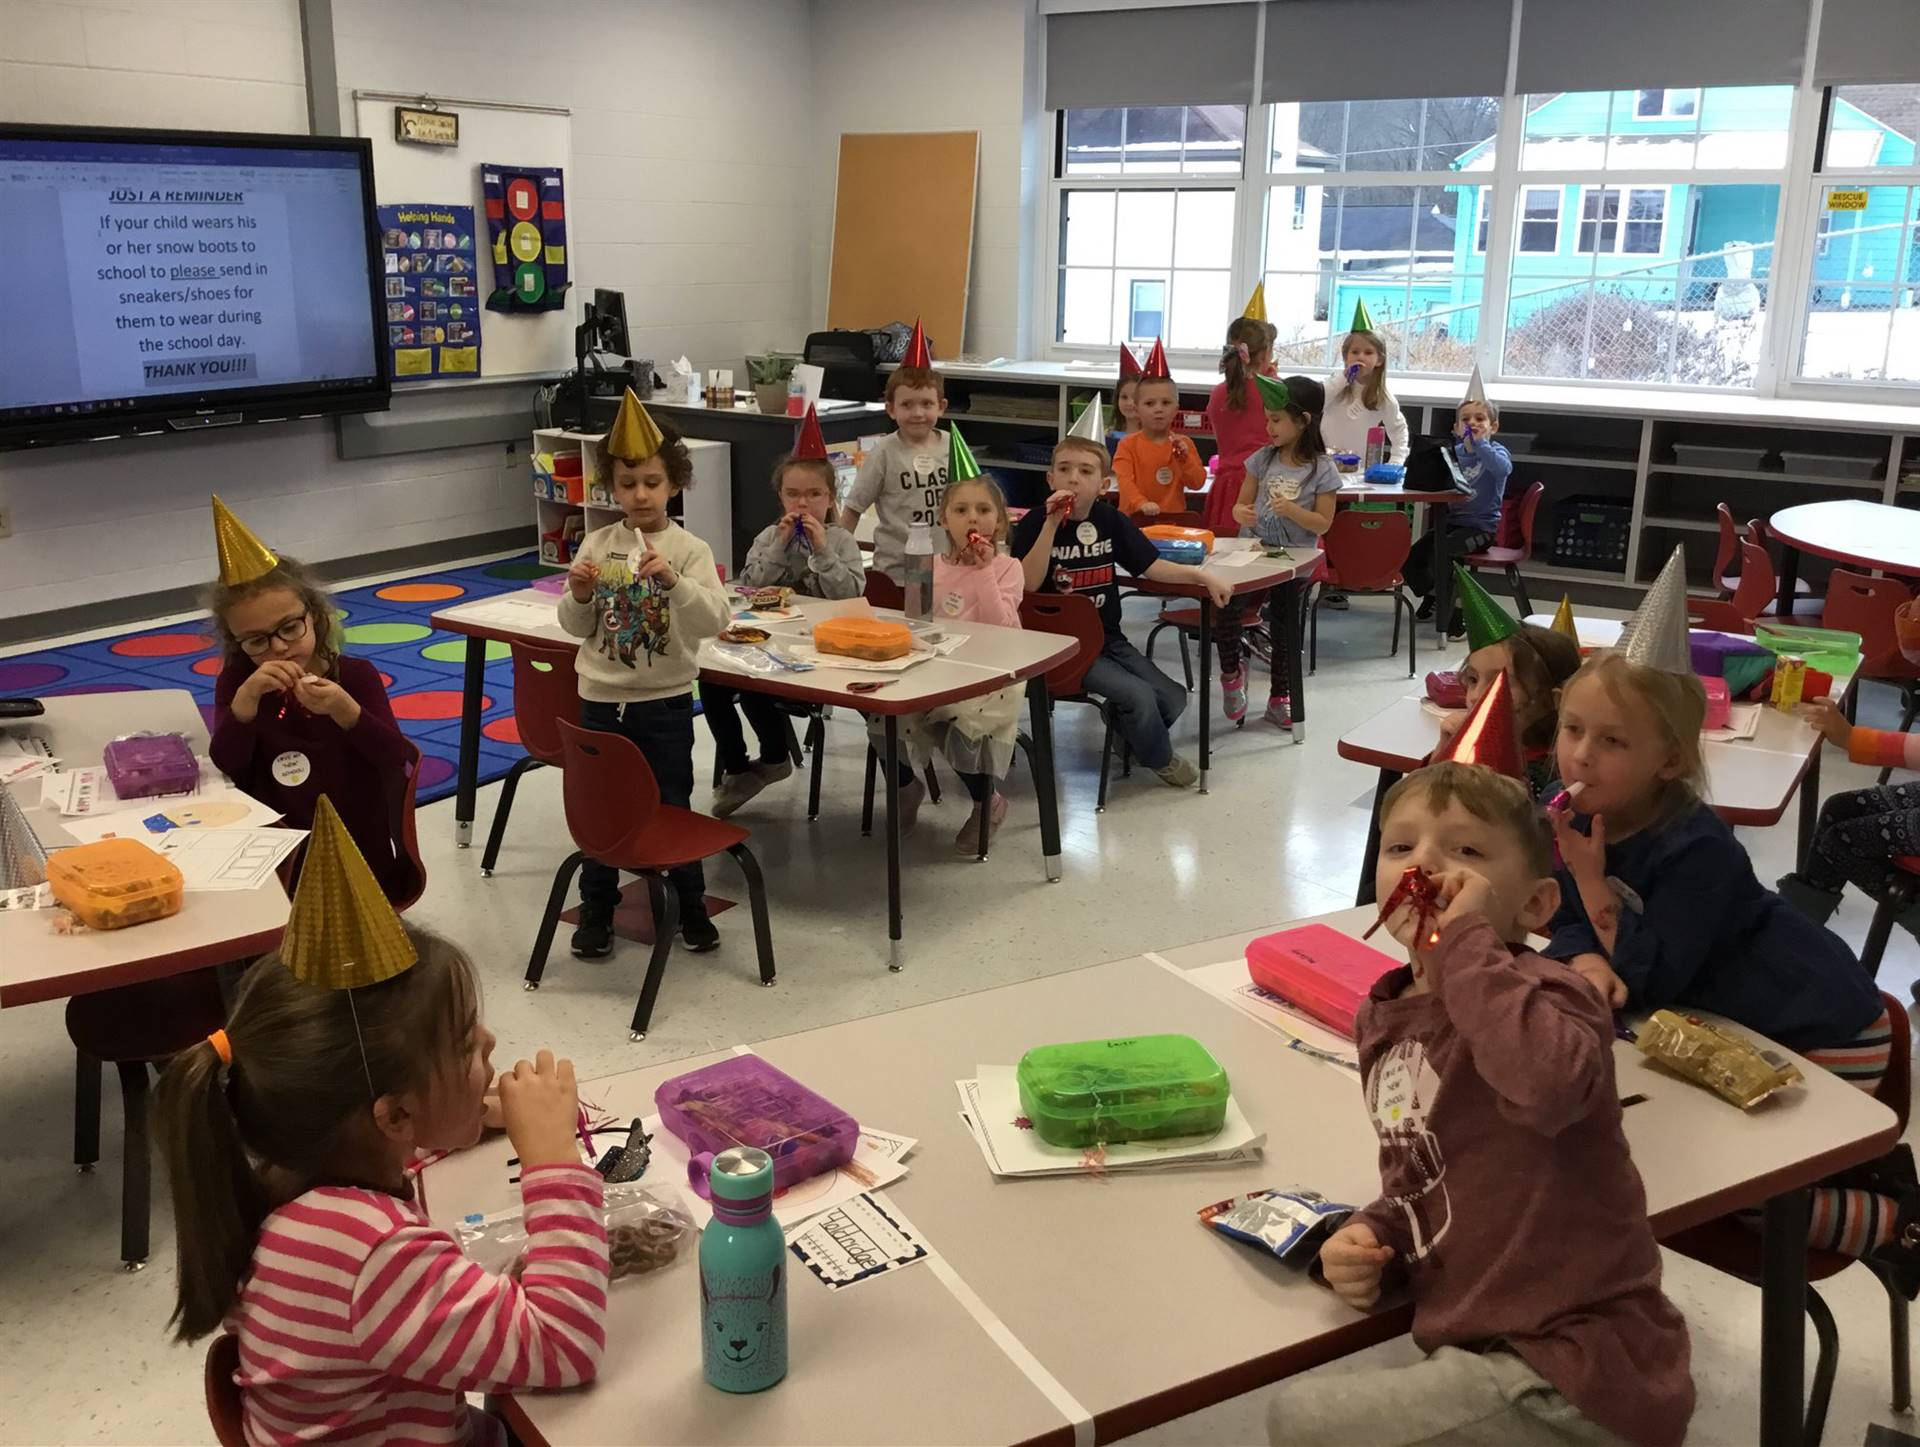 students celebrating the new year and new school